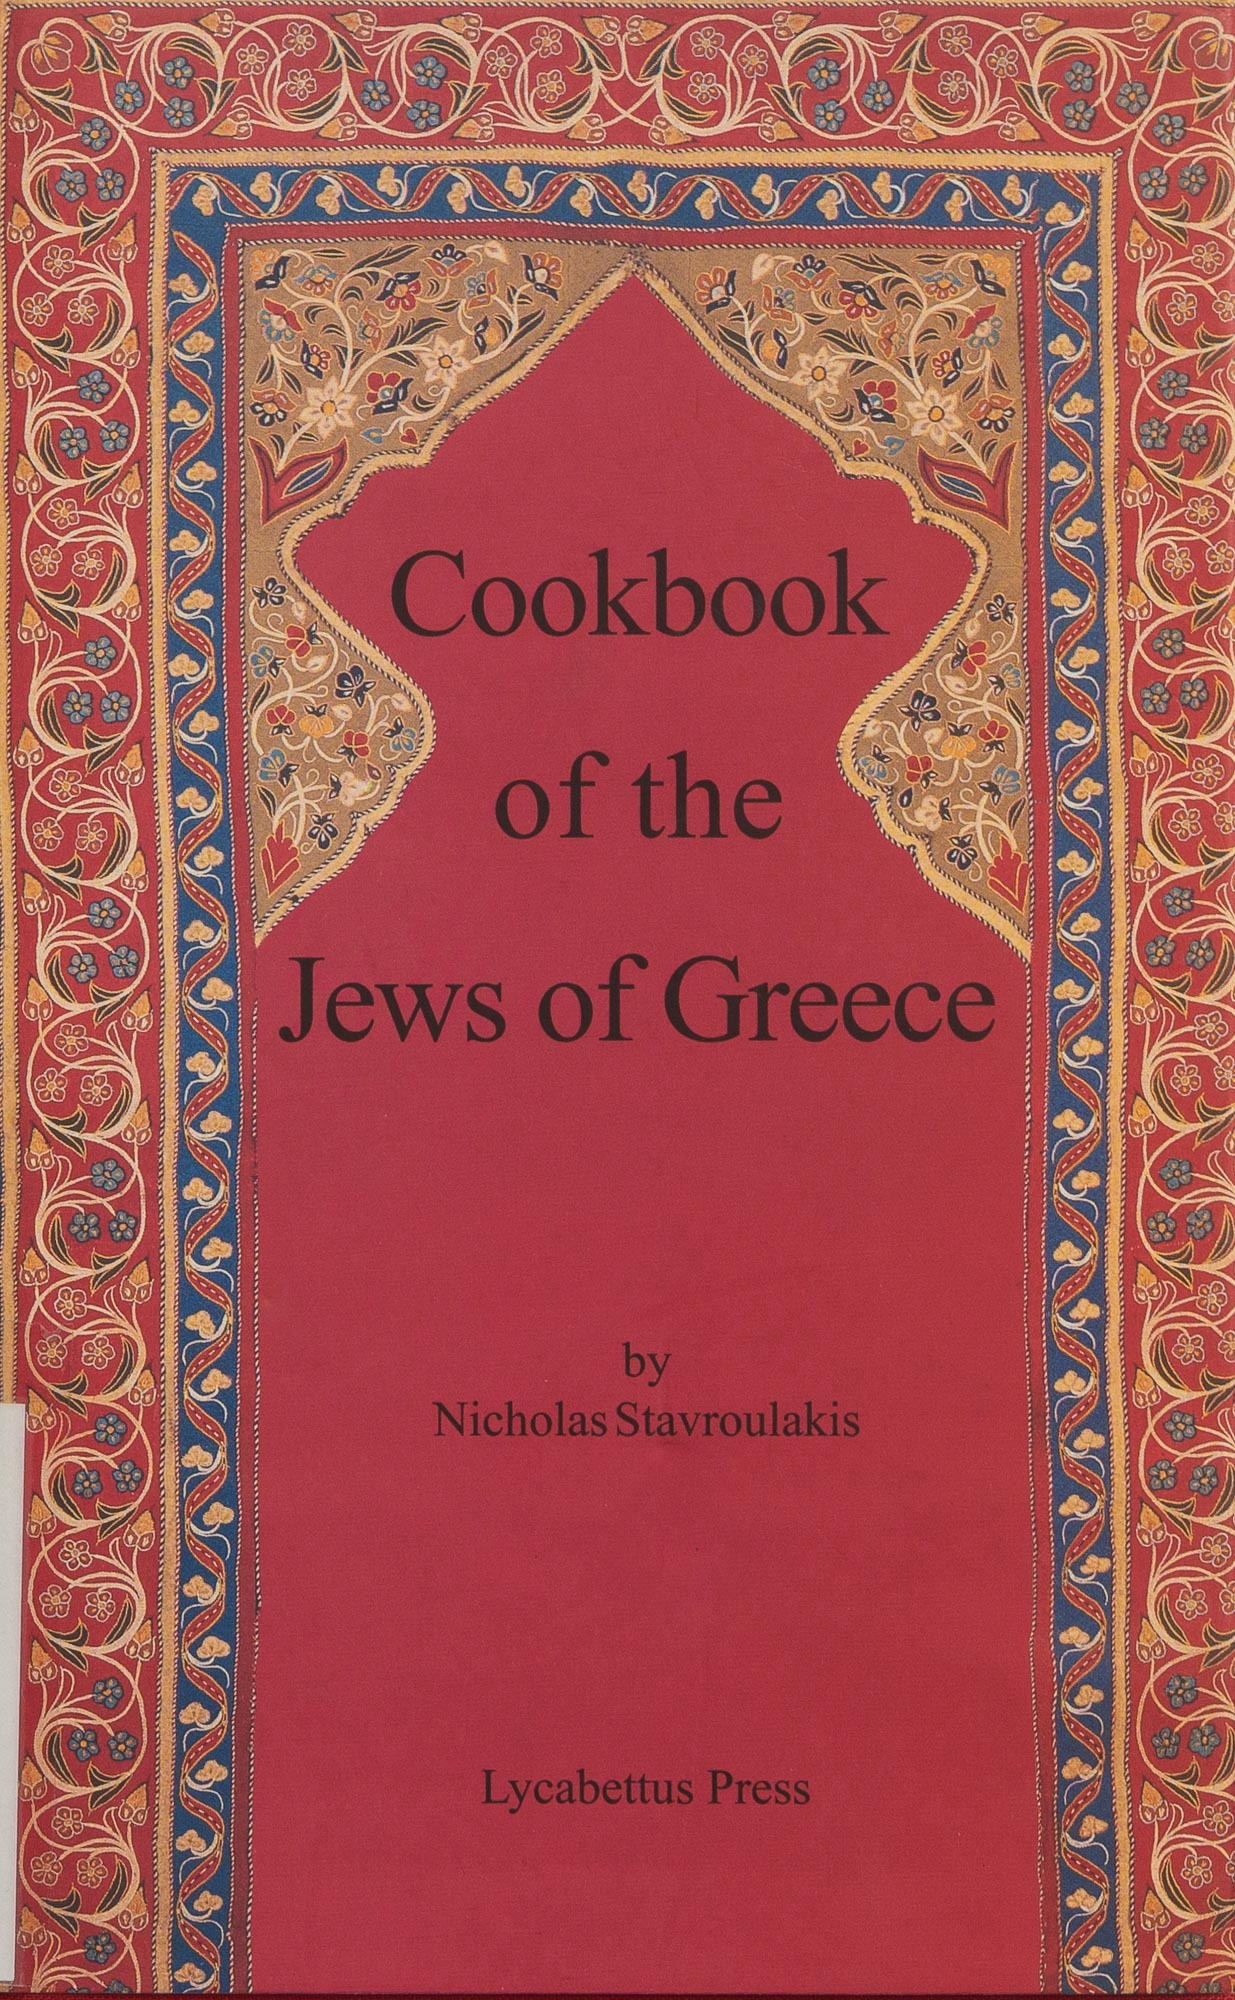 The cover of the Cookbook of the Jews of Greece